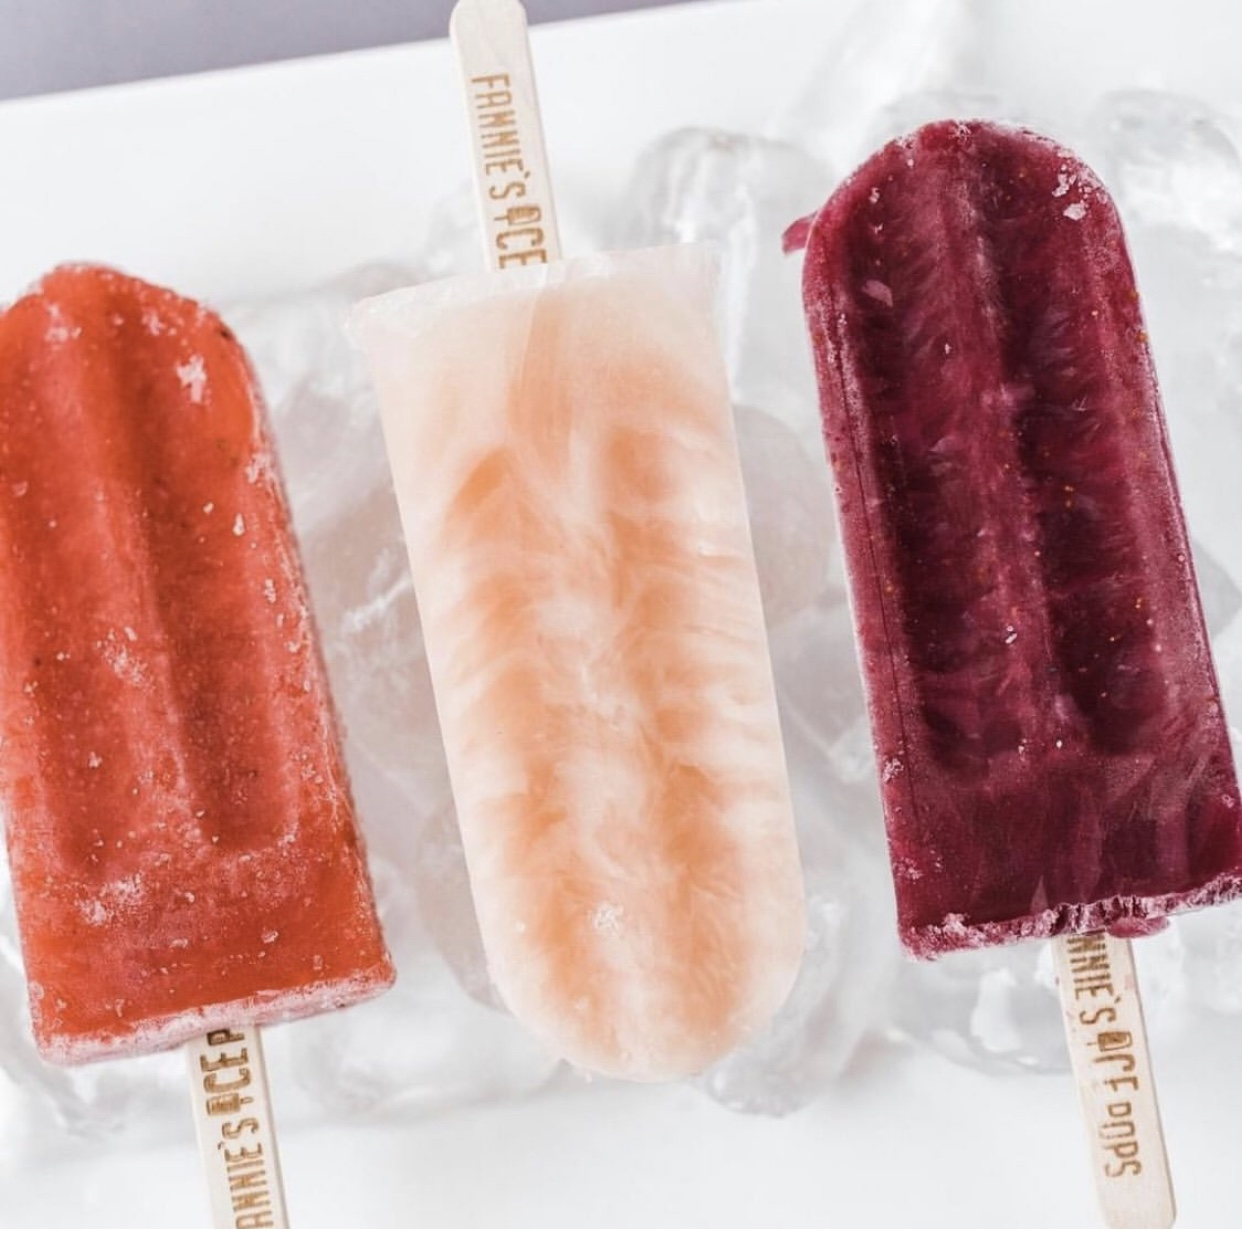 Image used courtesy of Fannie's Ice Pops